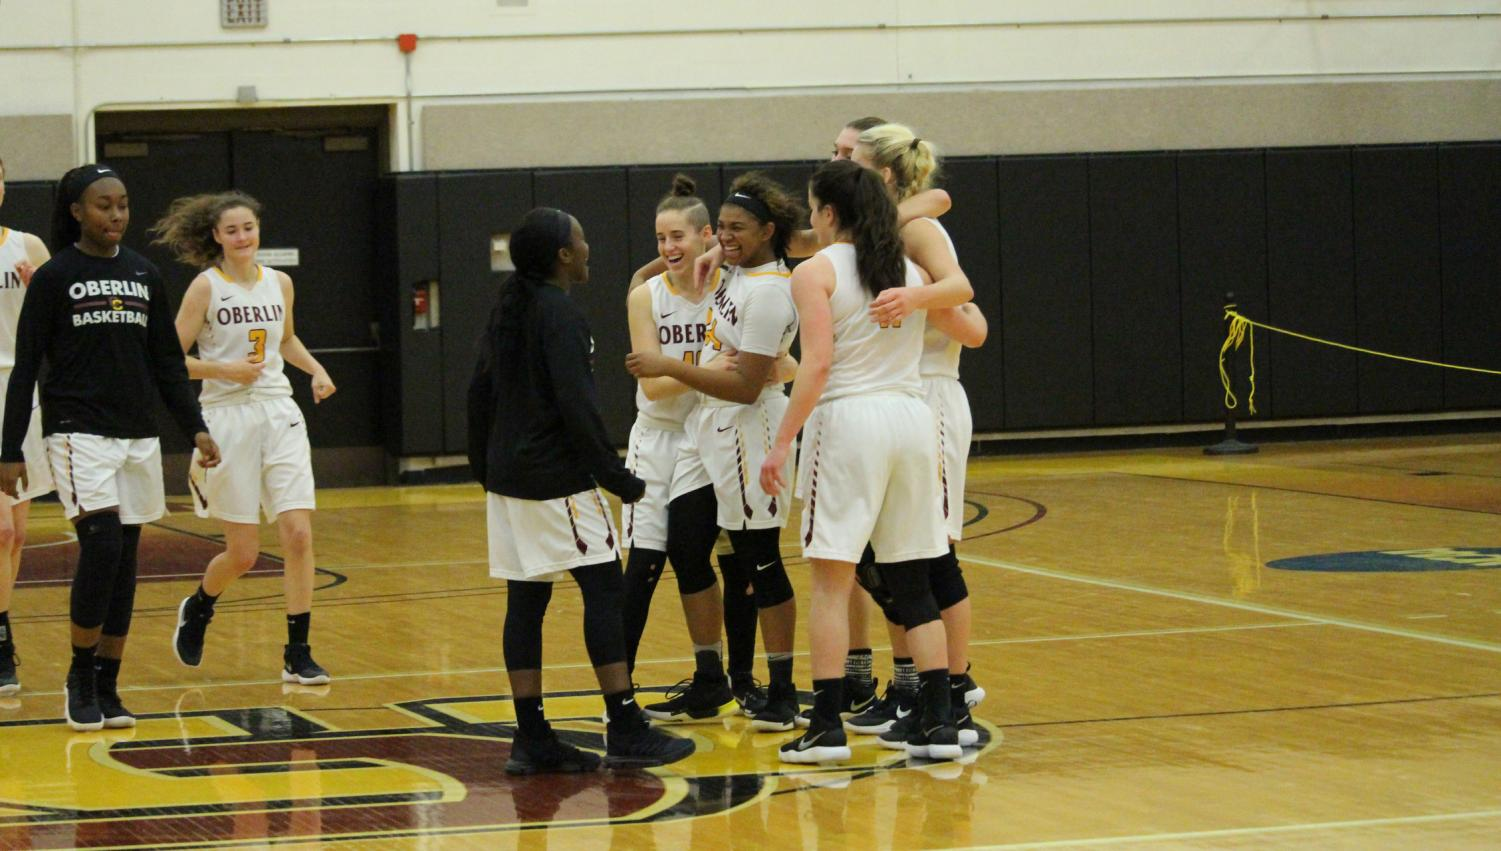 Members of the women's basketball team take pride in their geographical, racial, ethnic, sexual, and spiritual diversity, but put their differences aside when they step on the court, uniting behind their desire to win. The team looks to repeat as North Coast Athletic Conference champions this year, with their first game scheduled for Nov. 10.